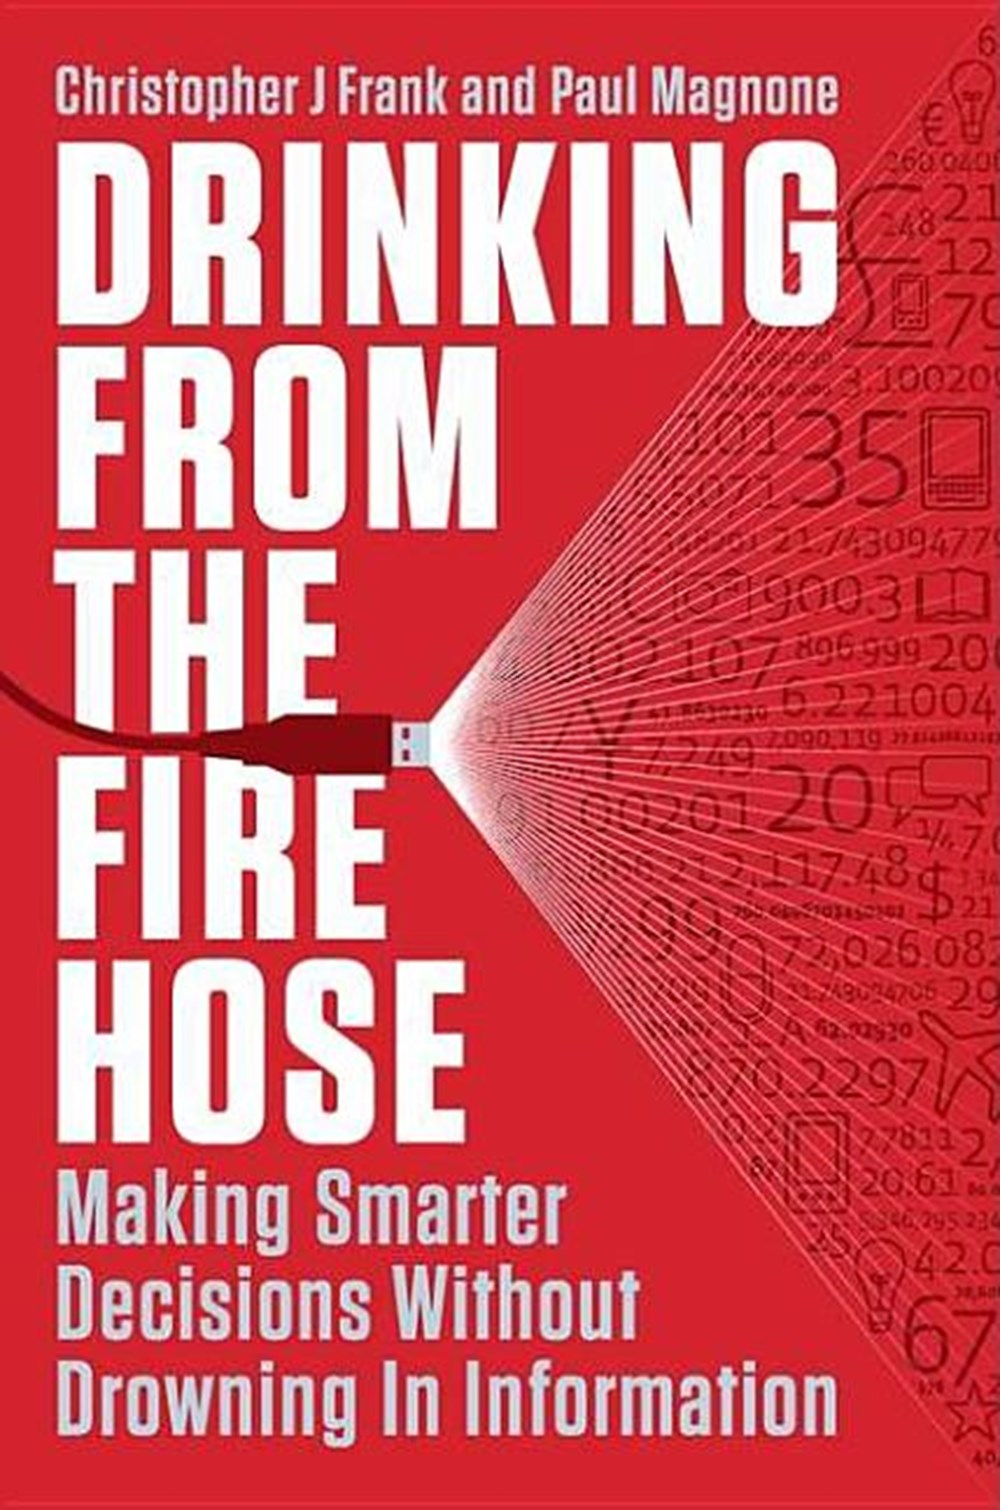 Drinking from the Fire Hose Making Smarter Decisions Without Drowning in Information